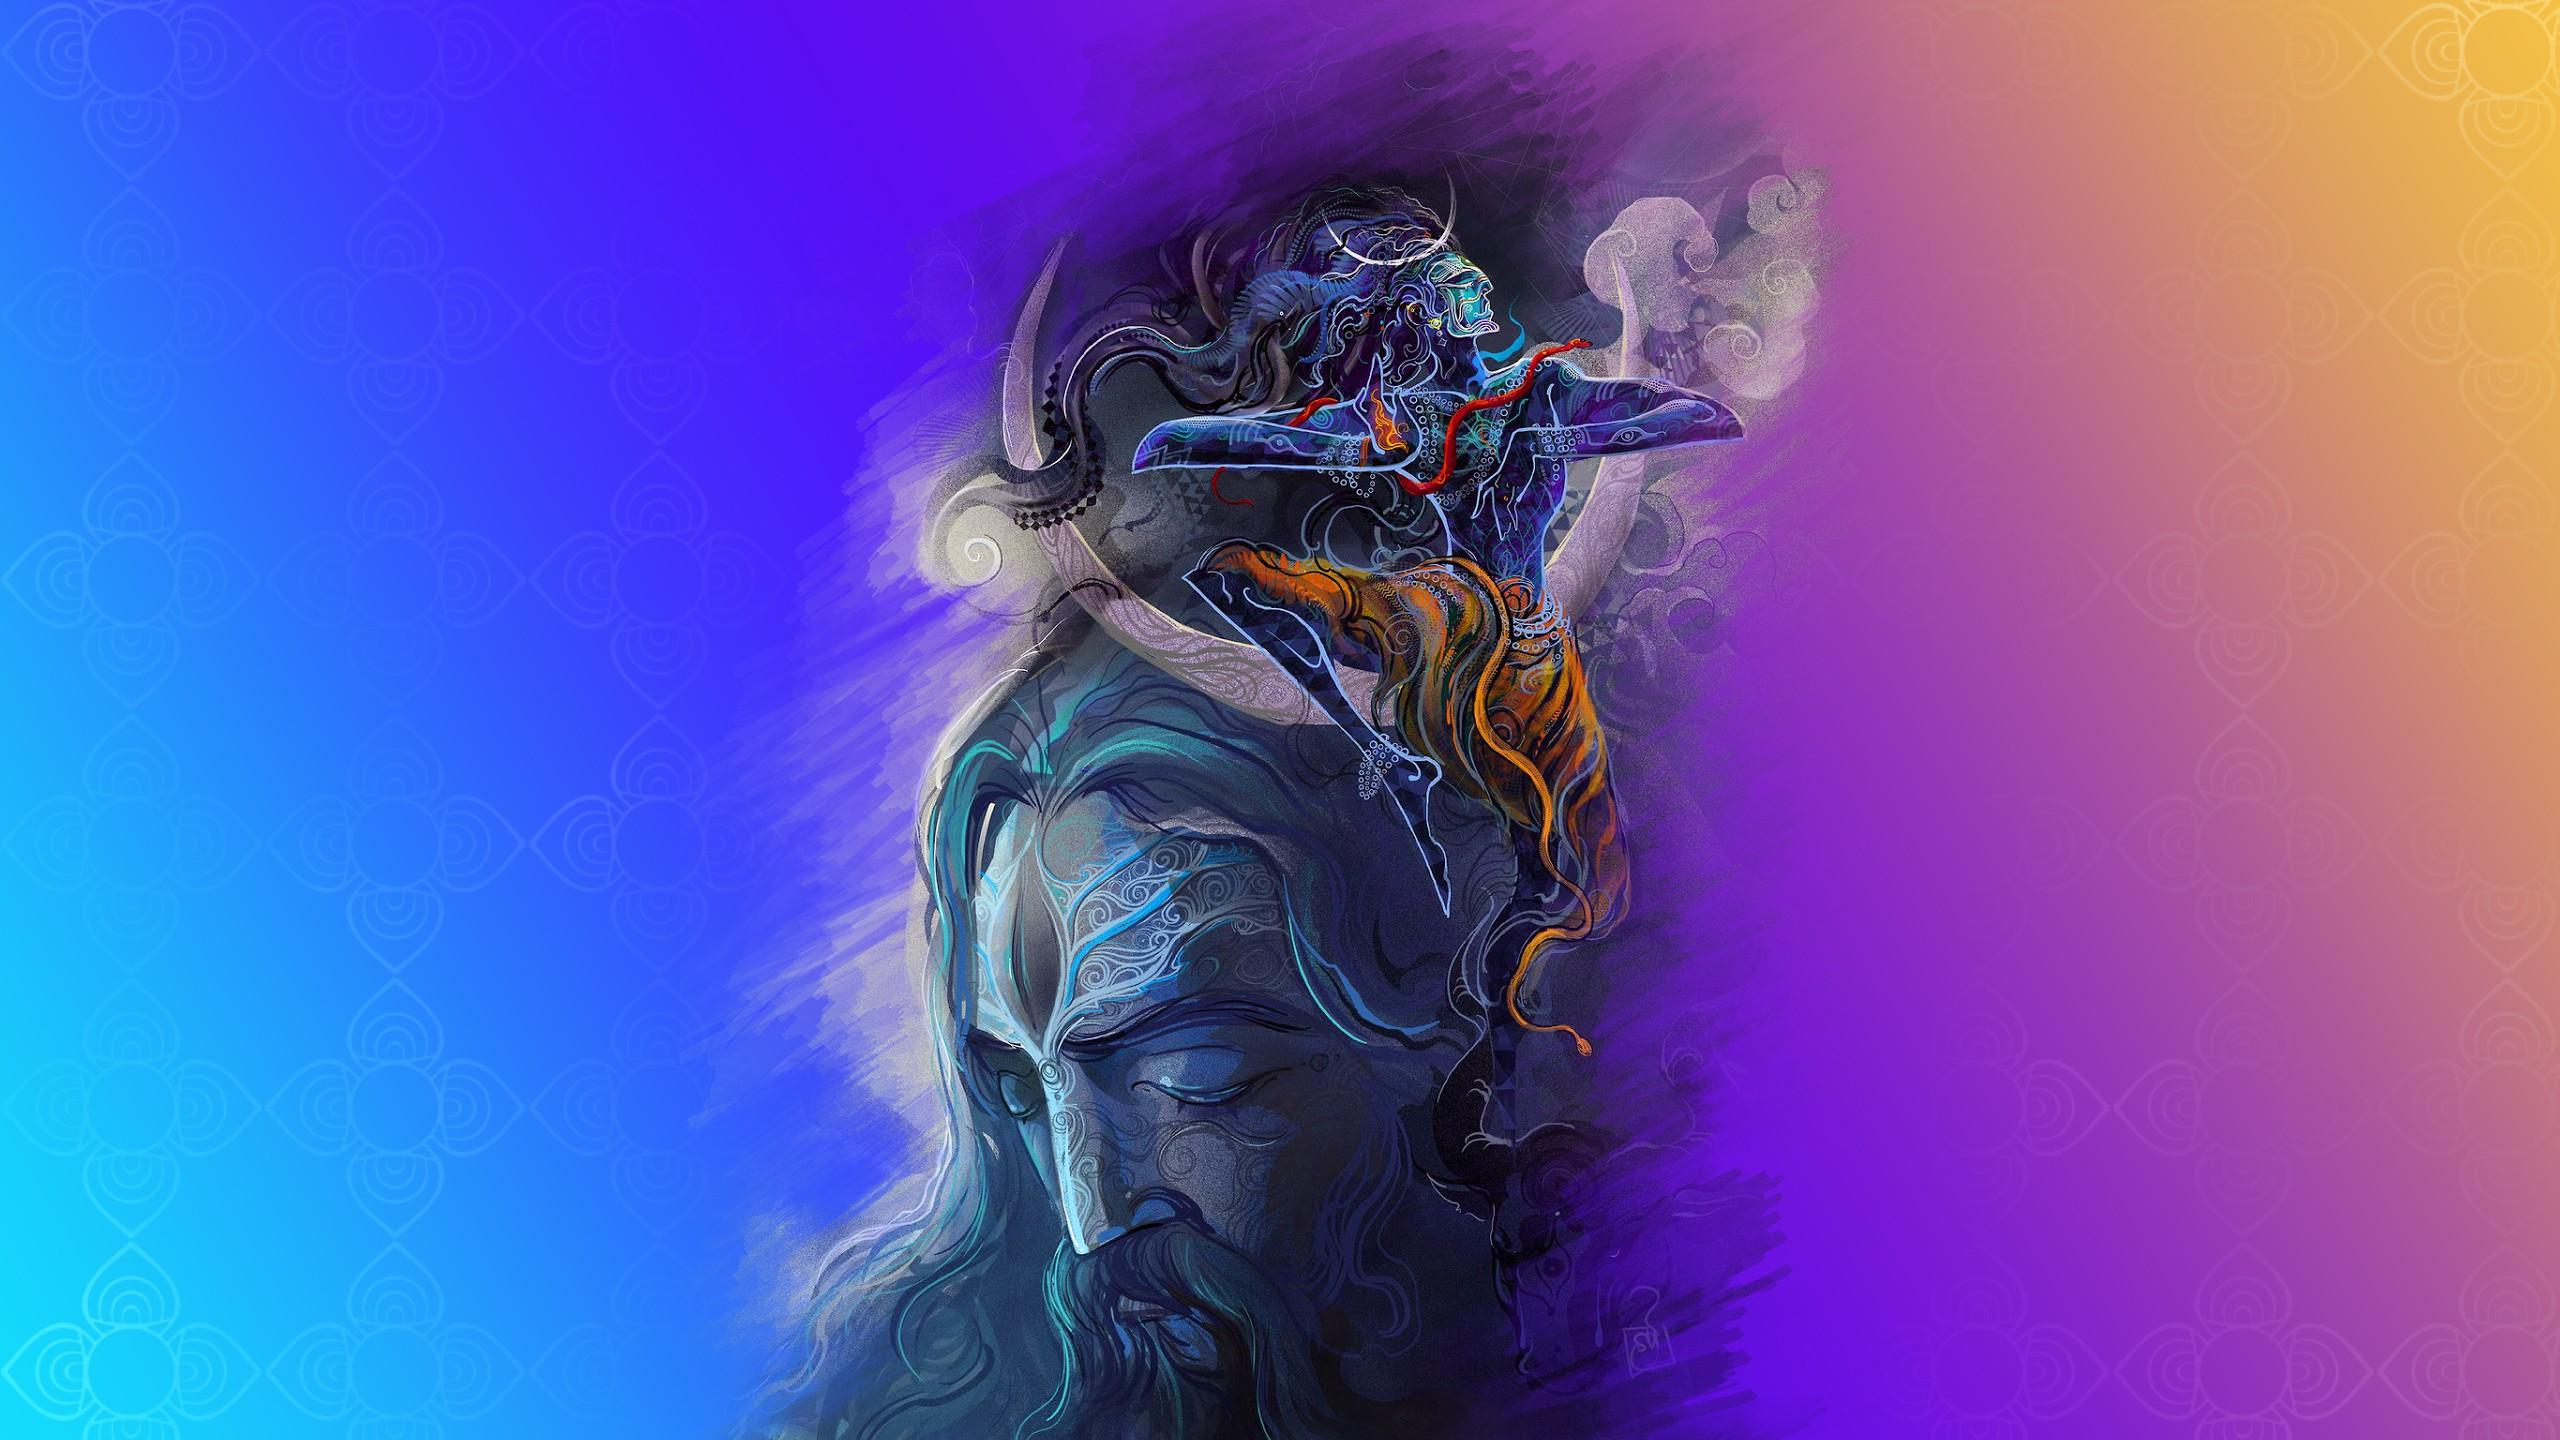 Lord Shiva Amoled 4k Wallpapers Wallpaper Cave